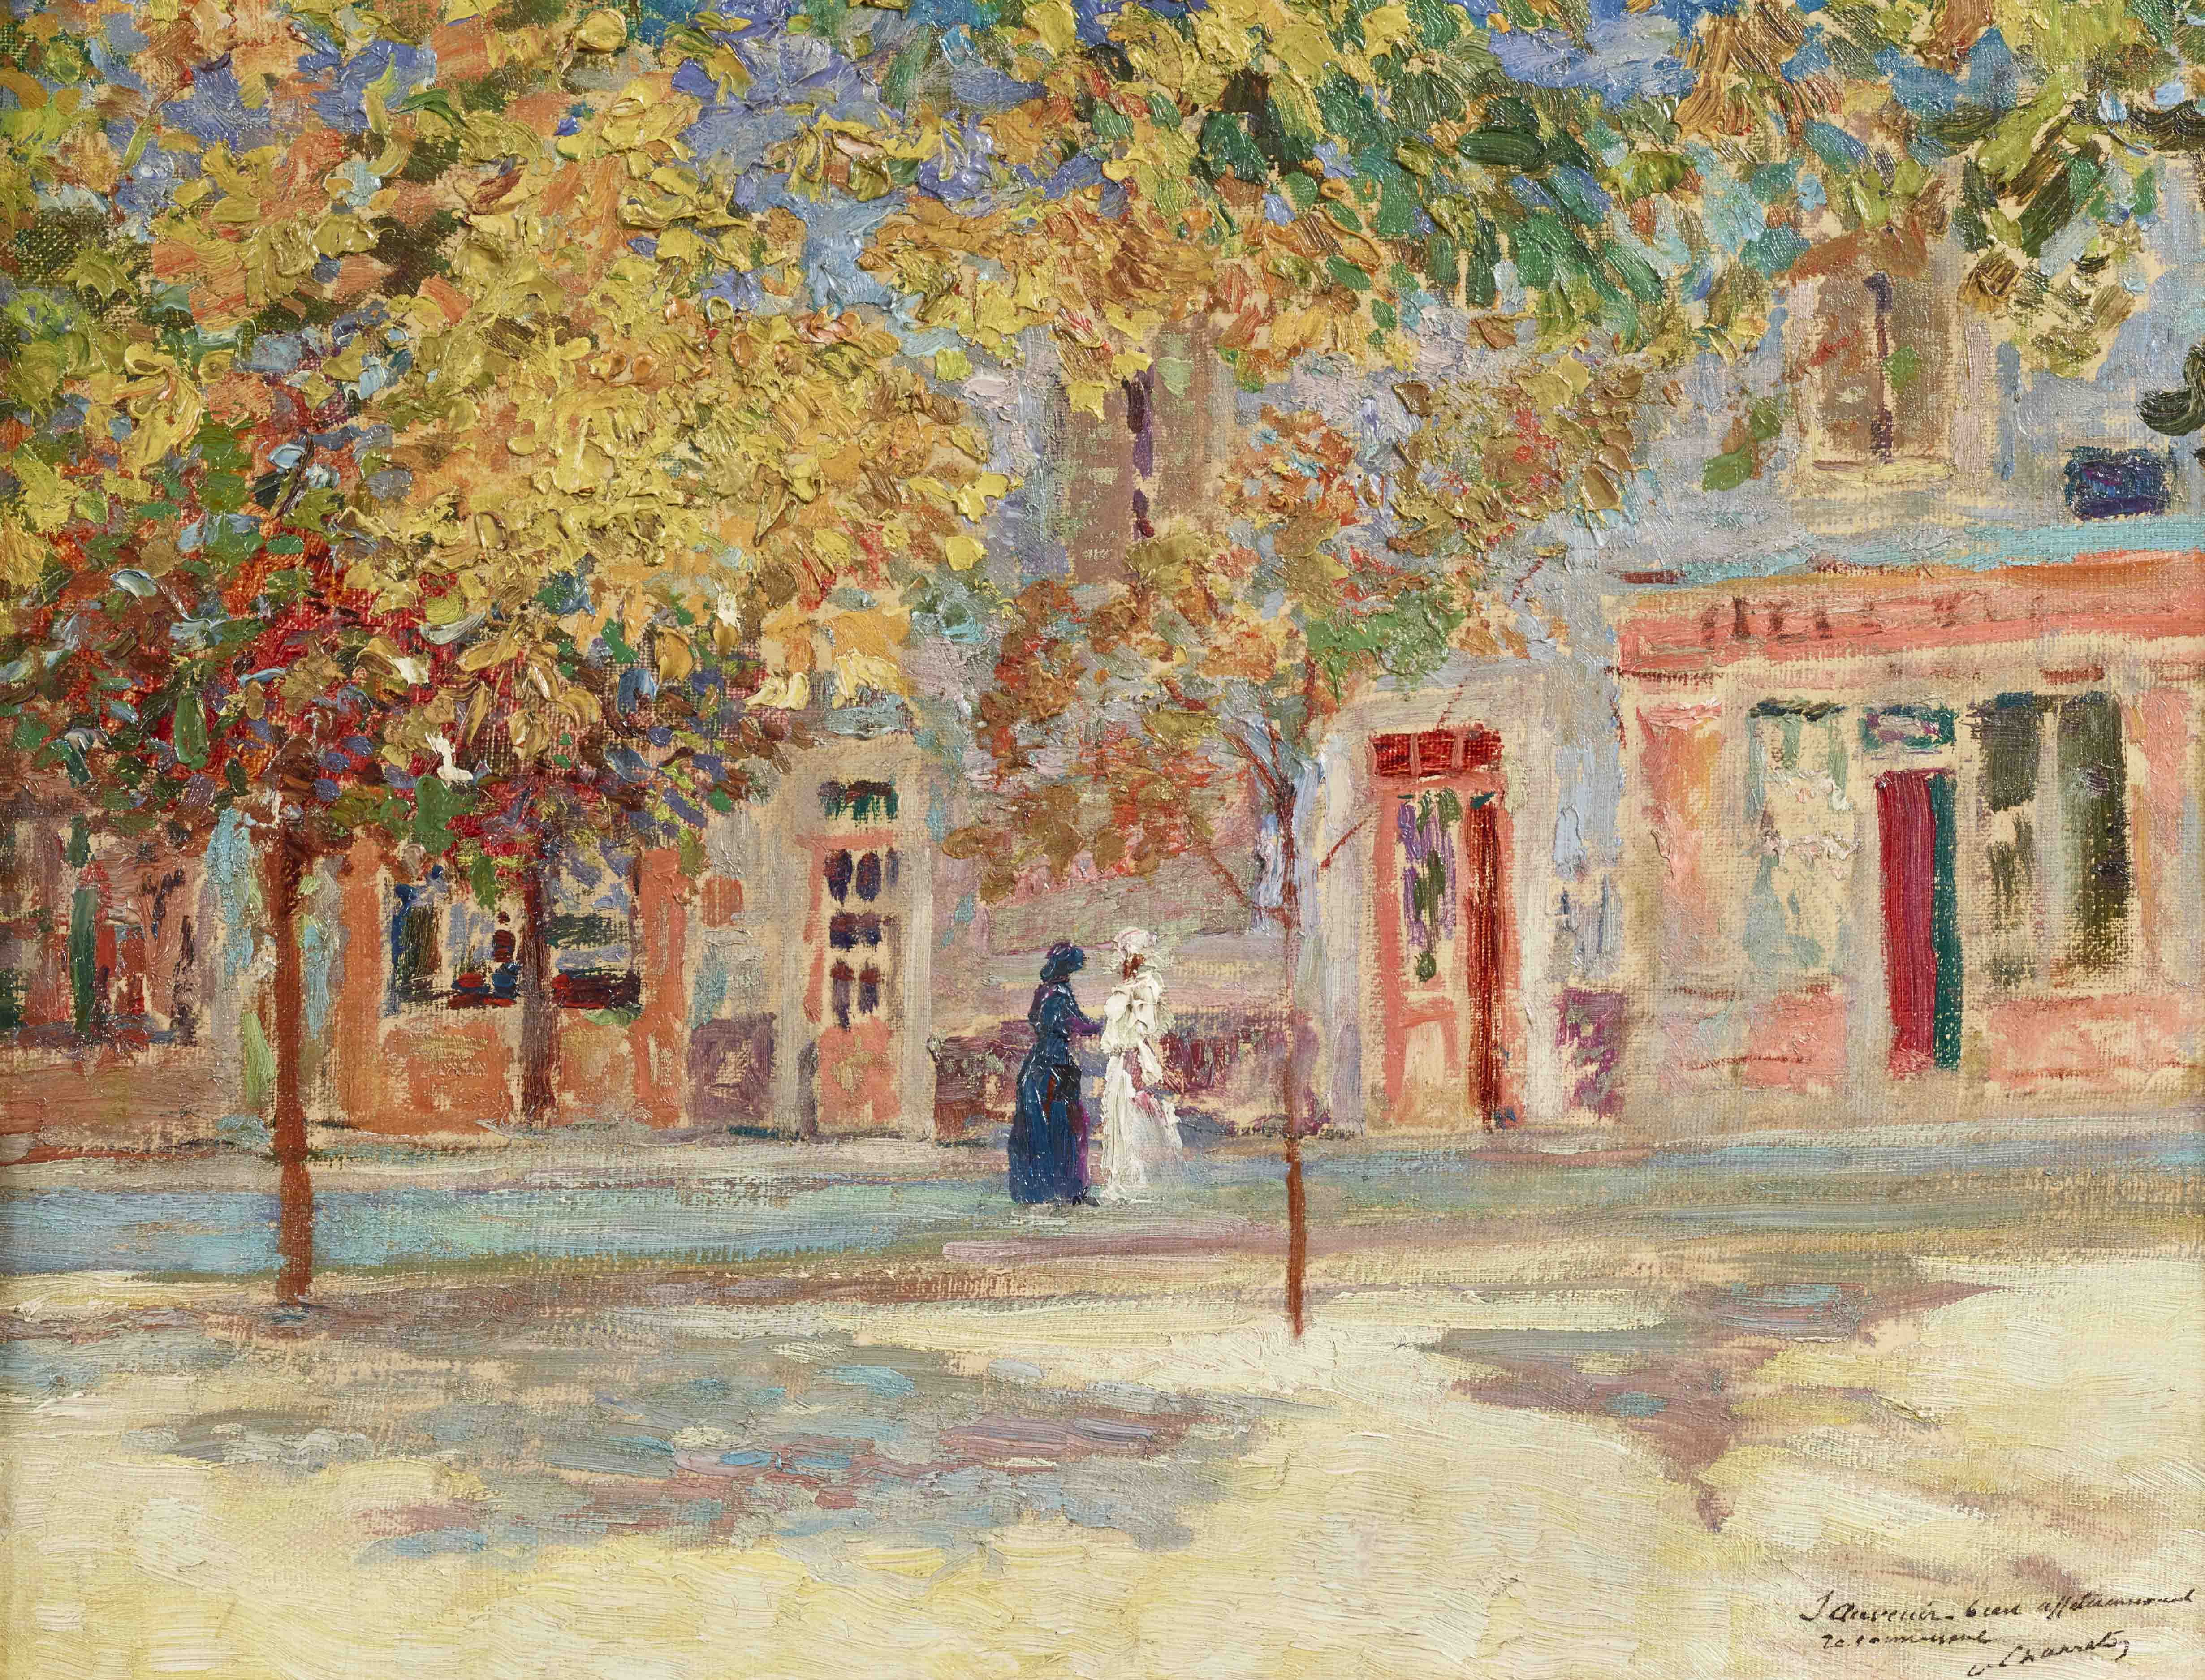 The Village Square by VICTOR CHARRETON 1864-1936